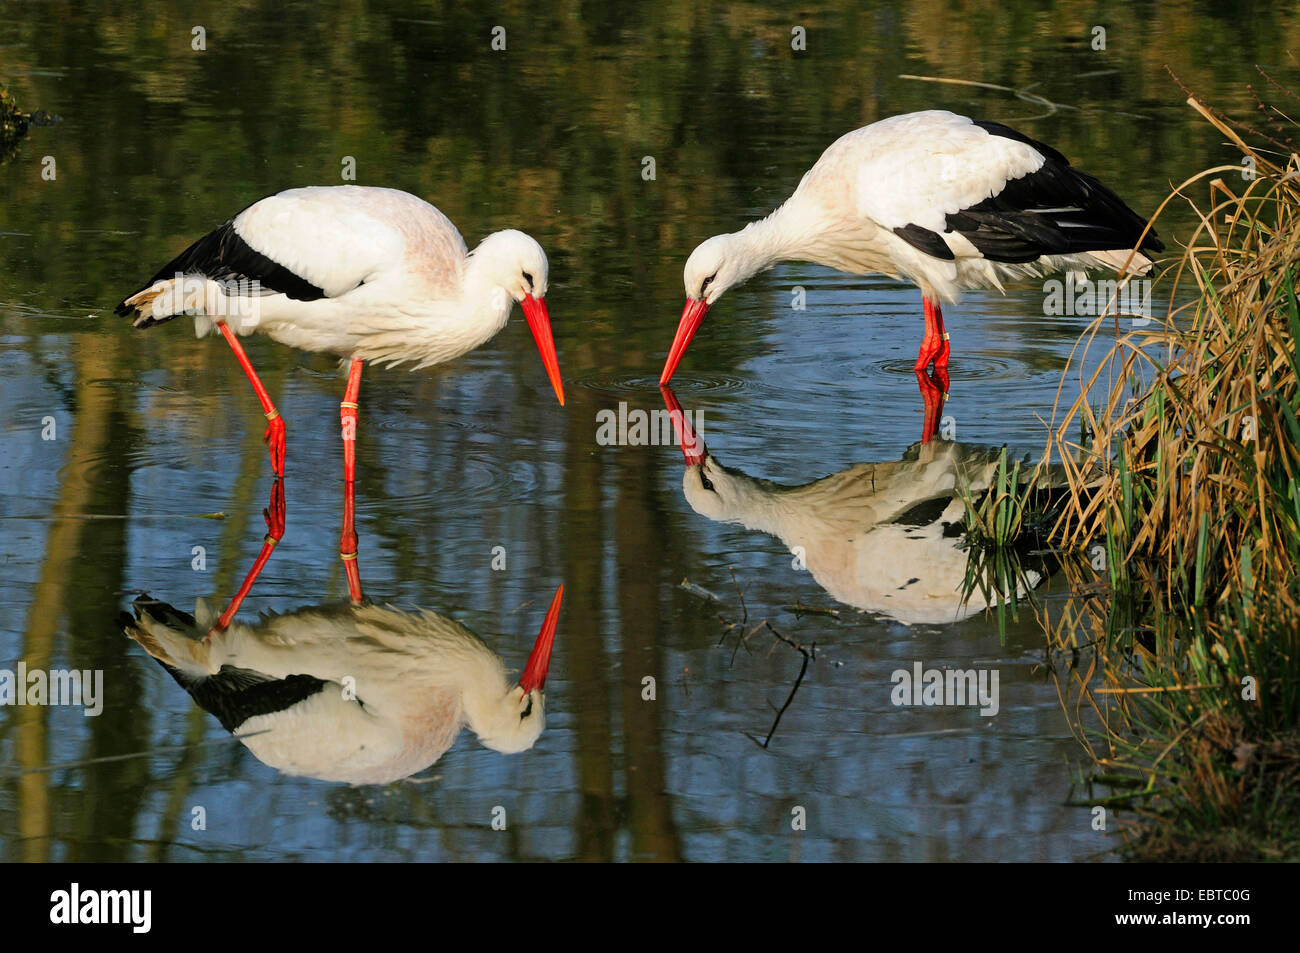 white stork (Ciconia ciconia), two birds looking for food in shallow water, Germany - Stock Image